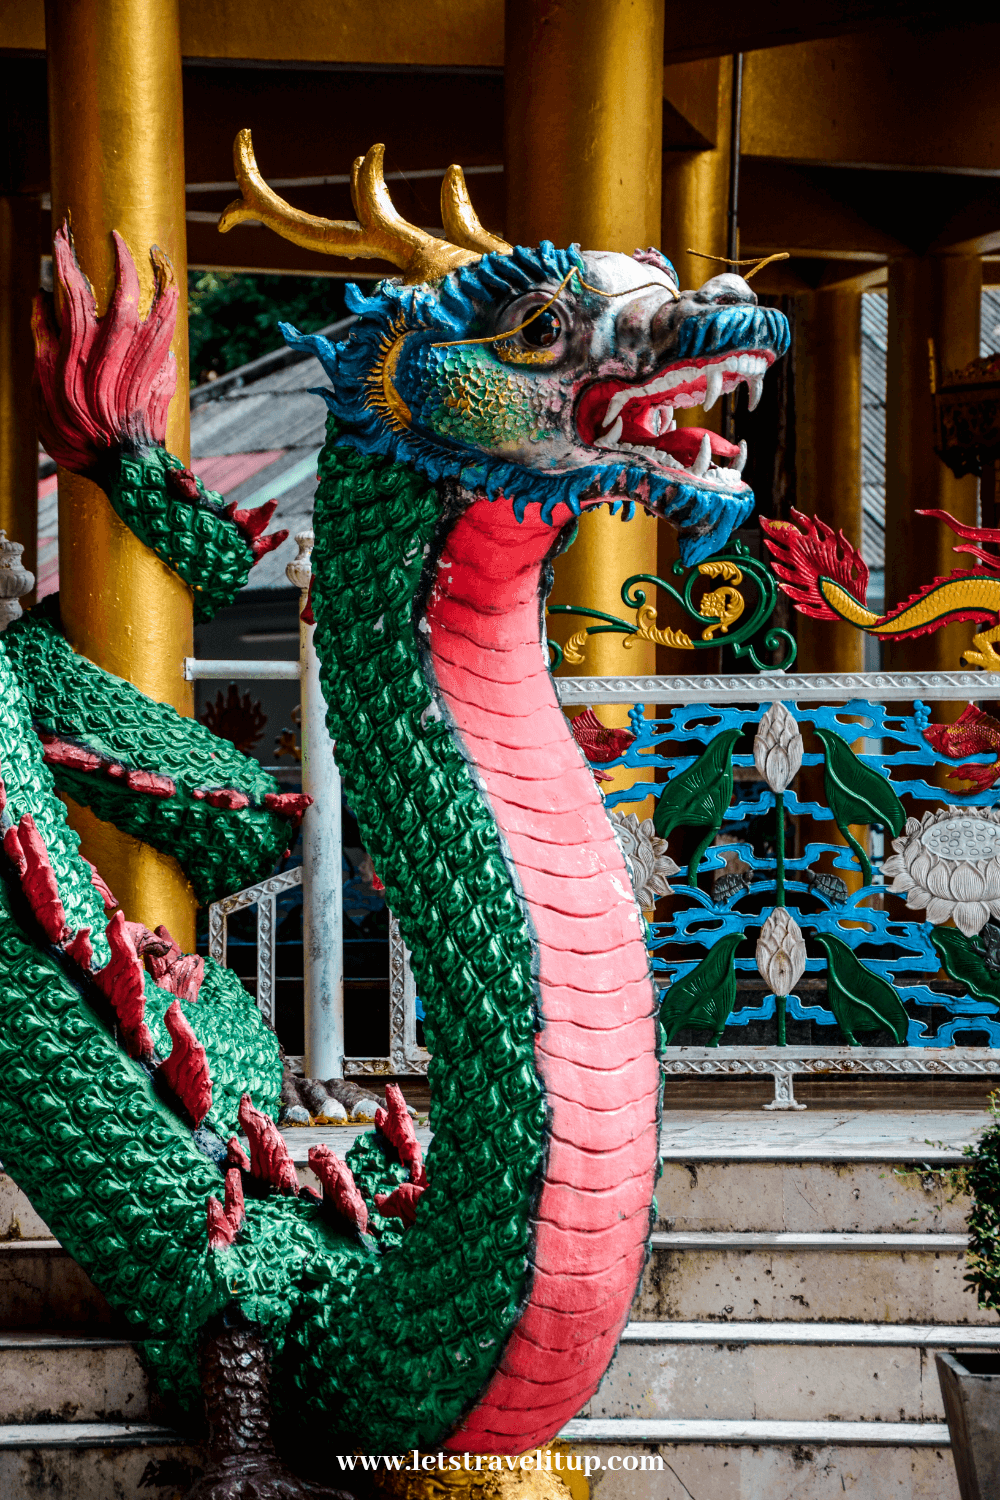 the dragons located at the entrance of temple are there to protect the temple from bad spirits.